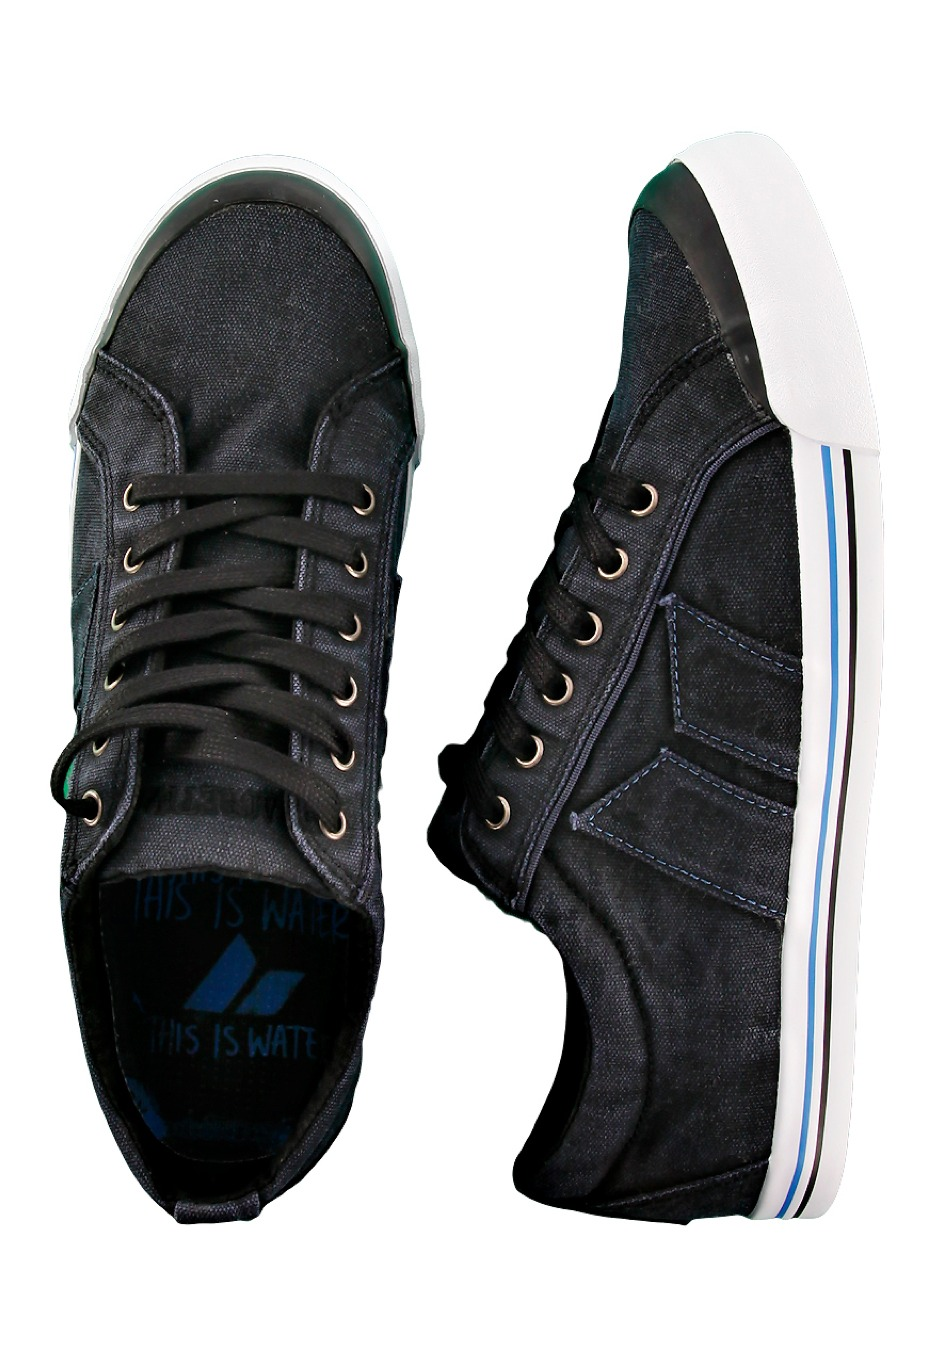 Macbeth - Eliot Premium Riley Breckenridge Blue Denim ...